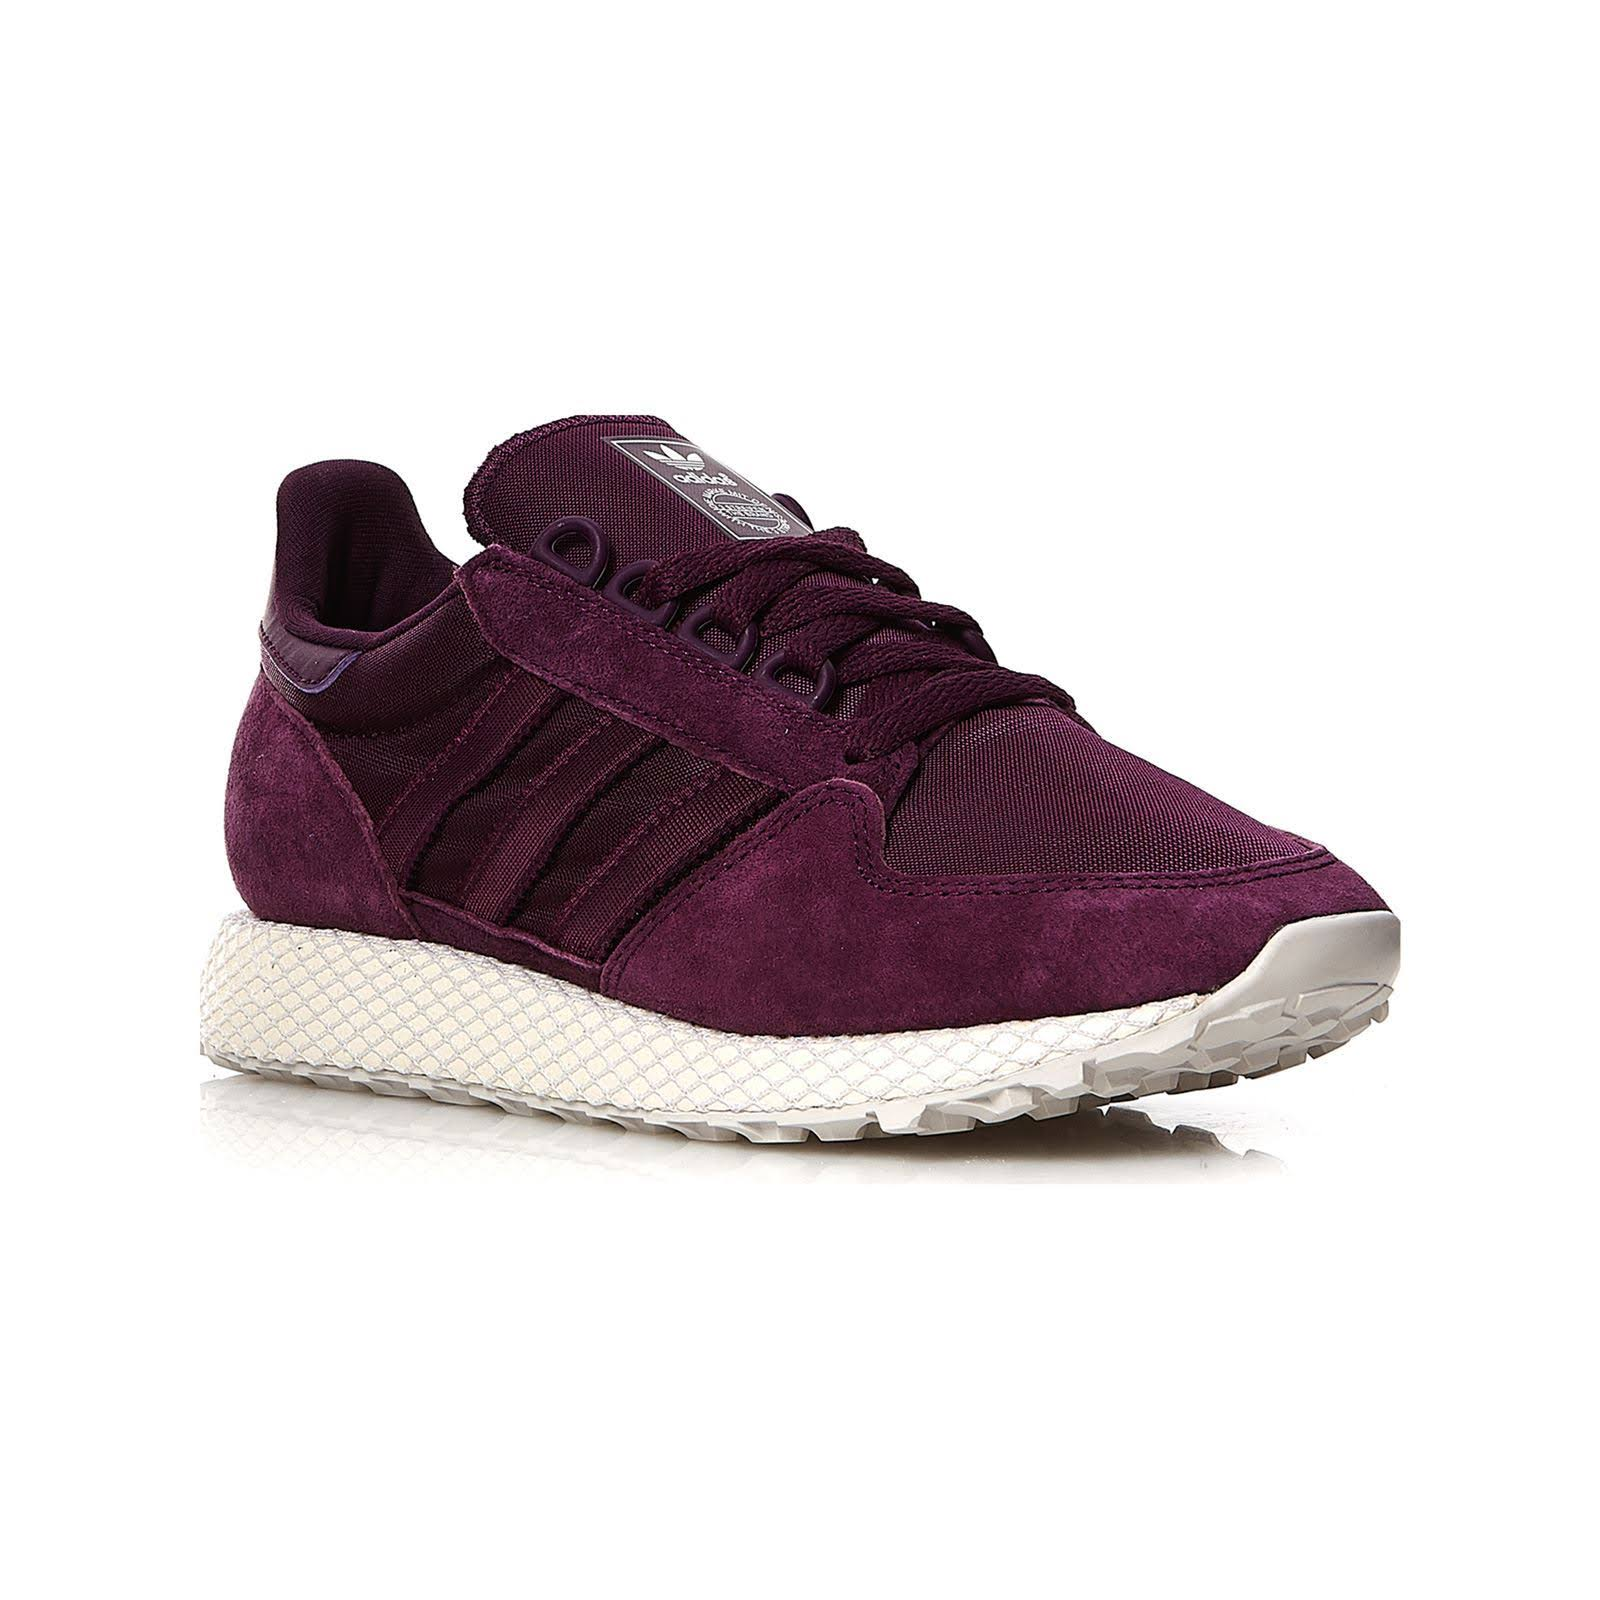 Adidas 1 Paars 3 Laag 'forest Grove'41 originals Sneakers w0nkOPX8